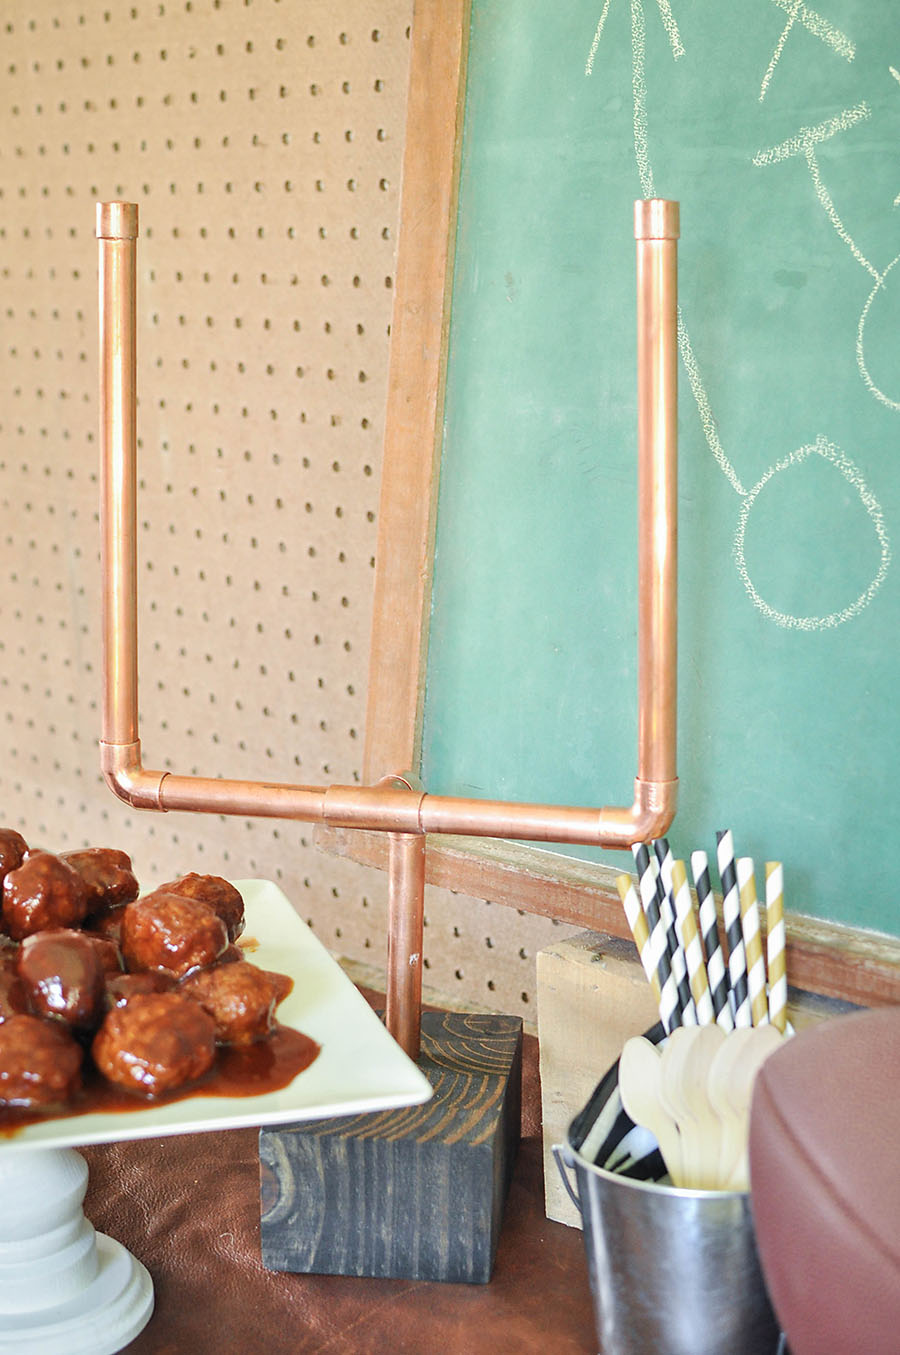 DIY Vintage Football Party DIY Copper Mini Football Goalposts - Wit & Wander